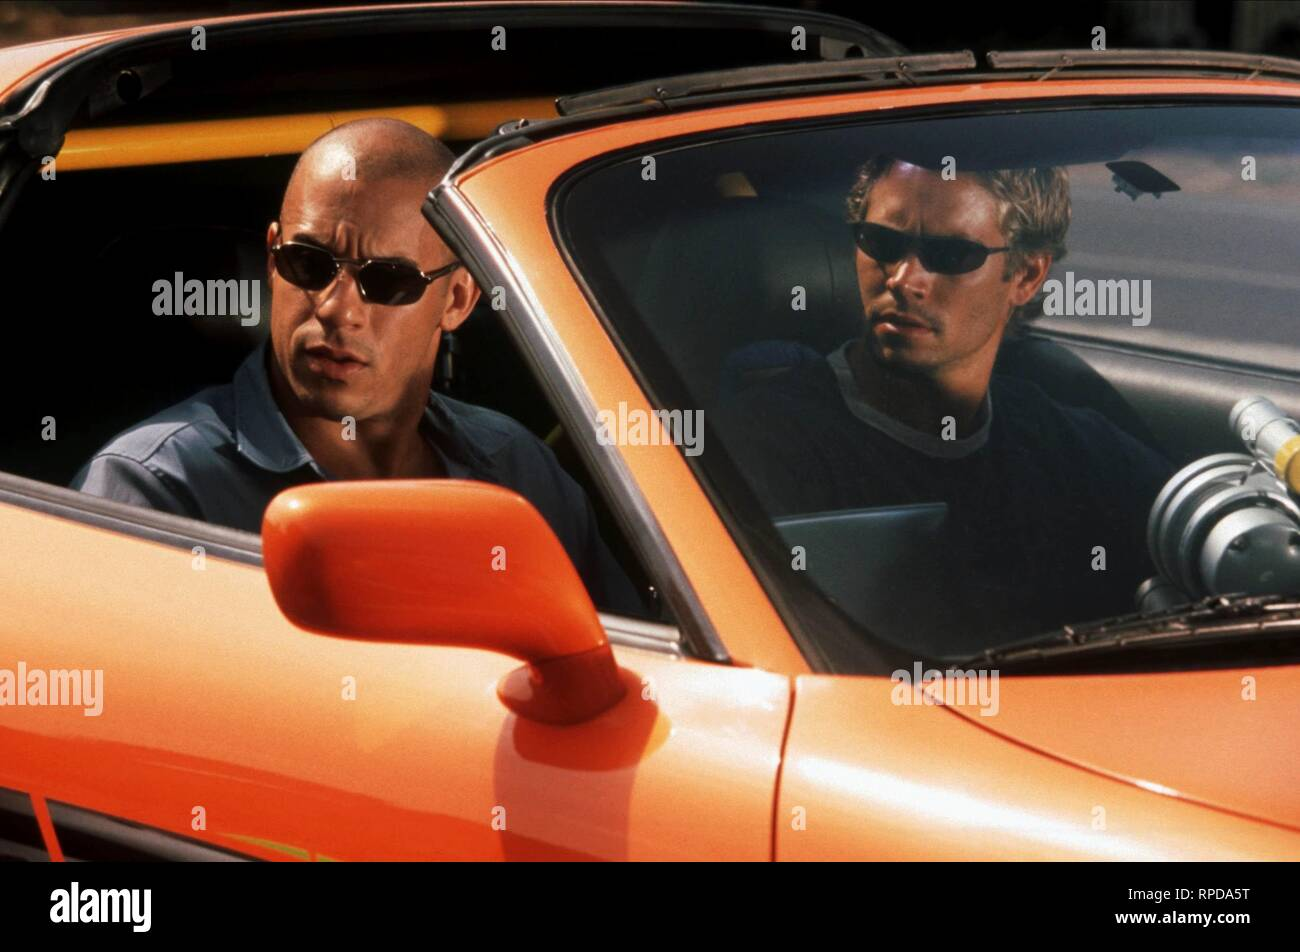 VIN DIESEL,PAUL WALKER, THE FAST AND THE FURIOUS, 2001 Stock Photo